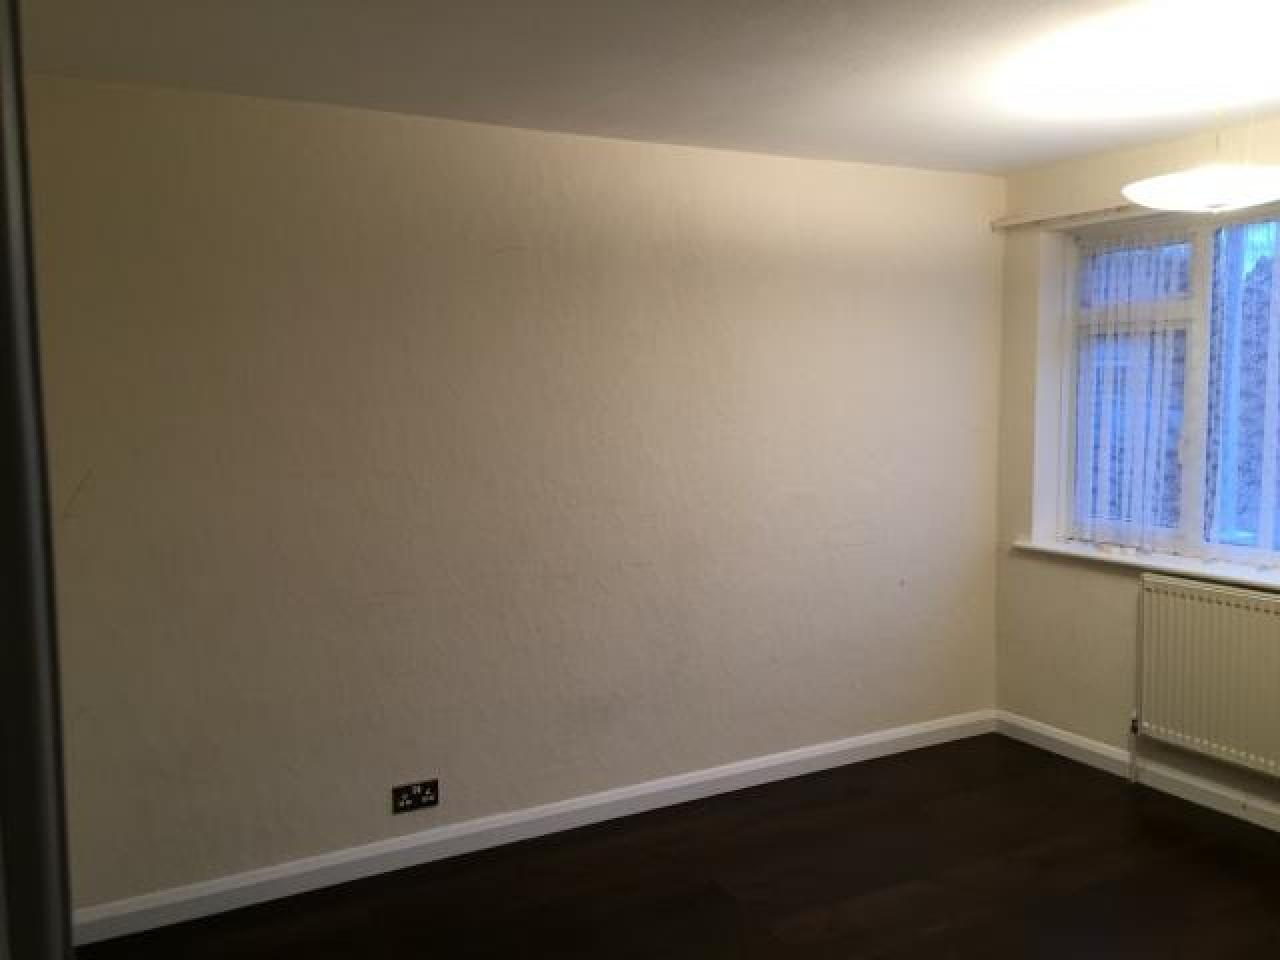 2 bedroom flat for rent in Collier Row,Romford - 8